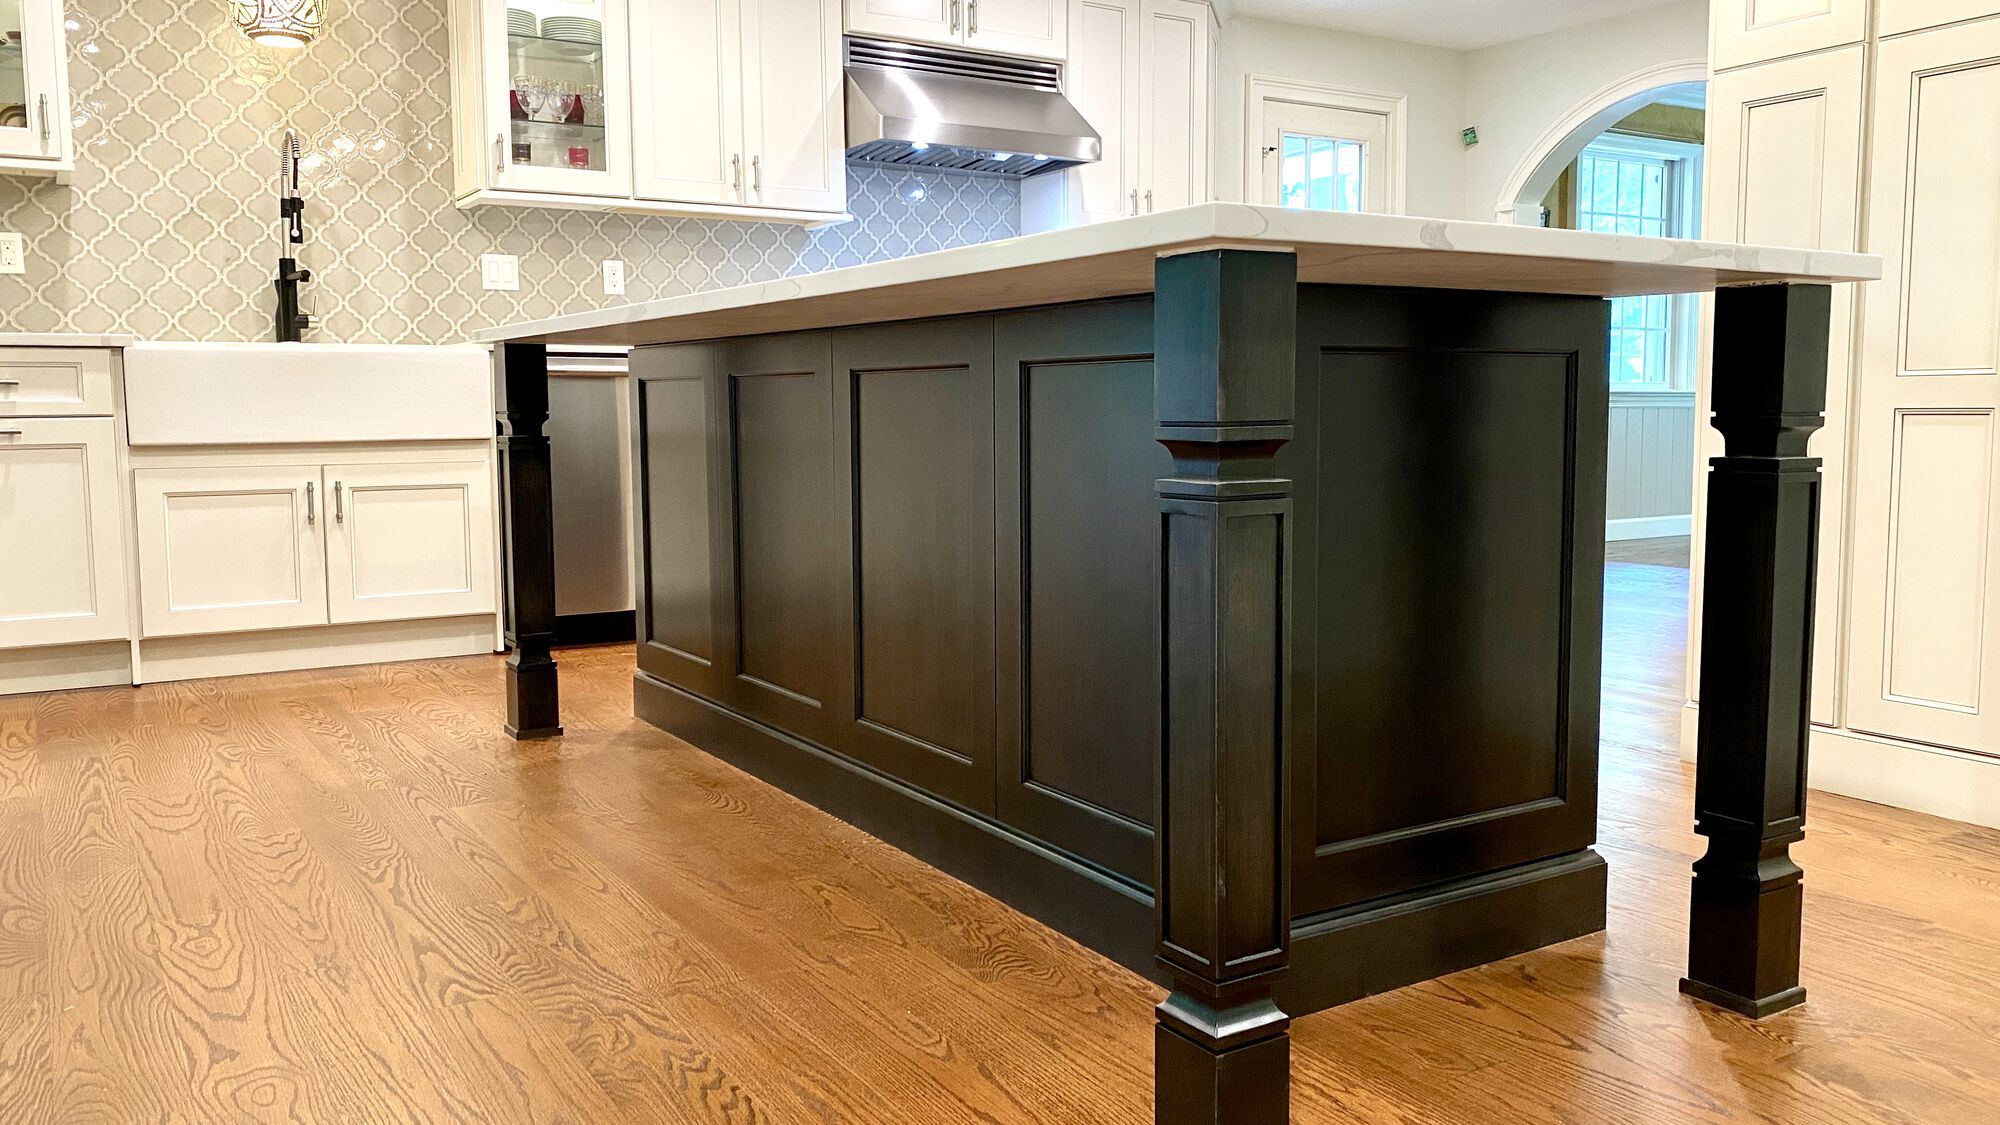 Kitchen Remodel with Island with Seating, Viking Appliances, Quarts Tops, In Cabinet Lights in Mahwah, Bergen County NJ